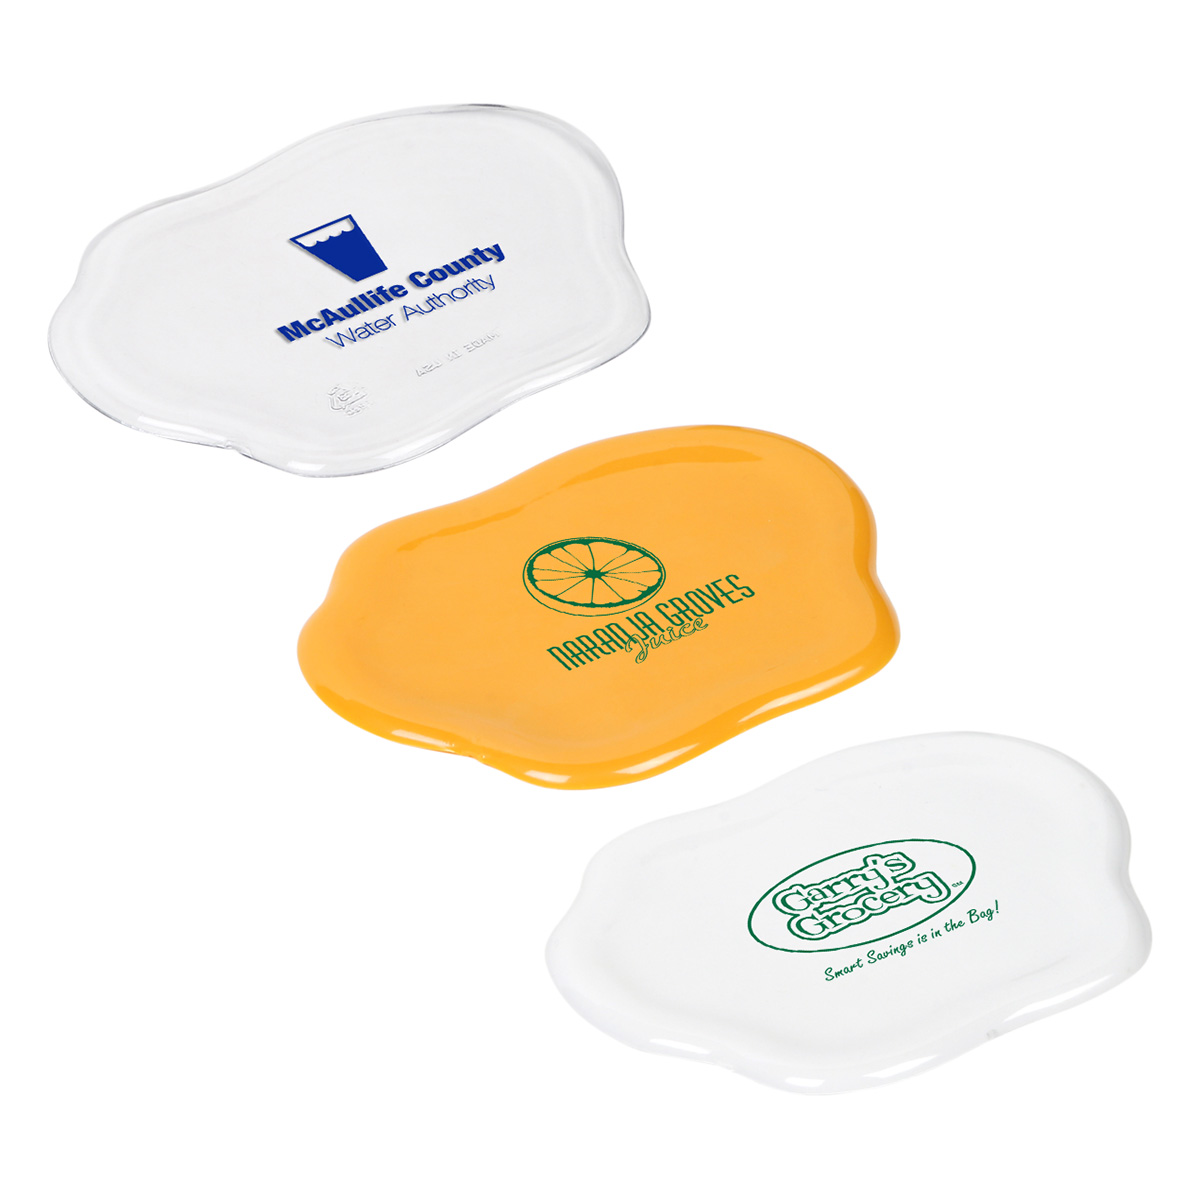 Sip N' Spill Coaster, WKA-SS11 - 1 Colour Imprint